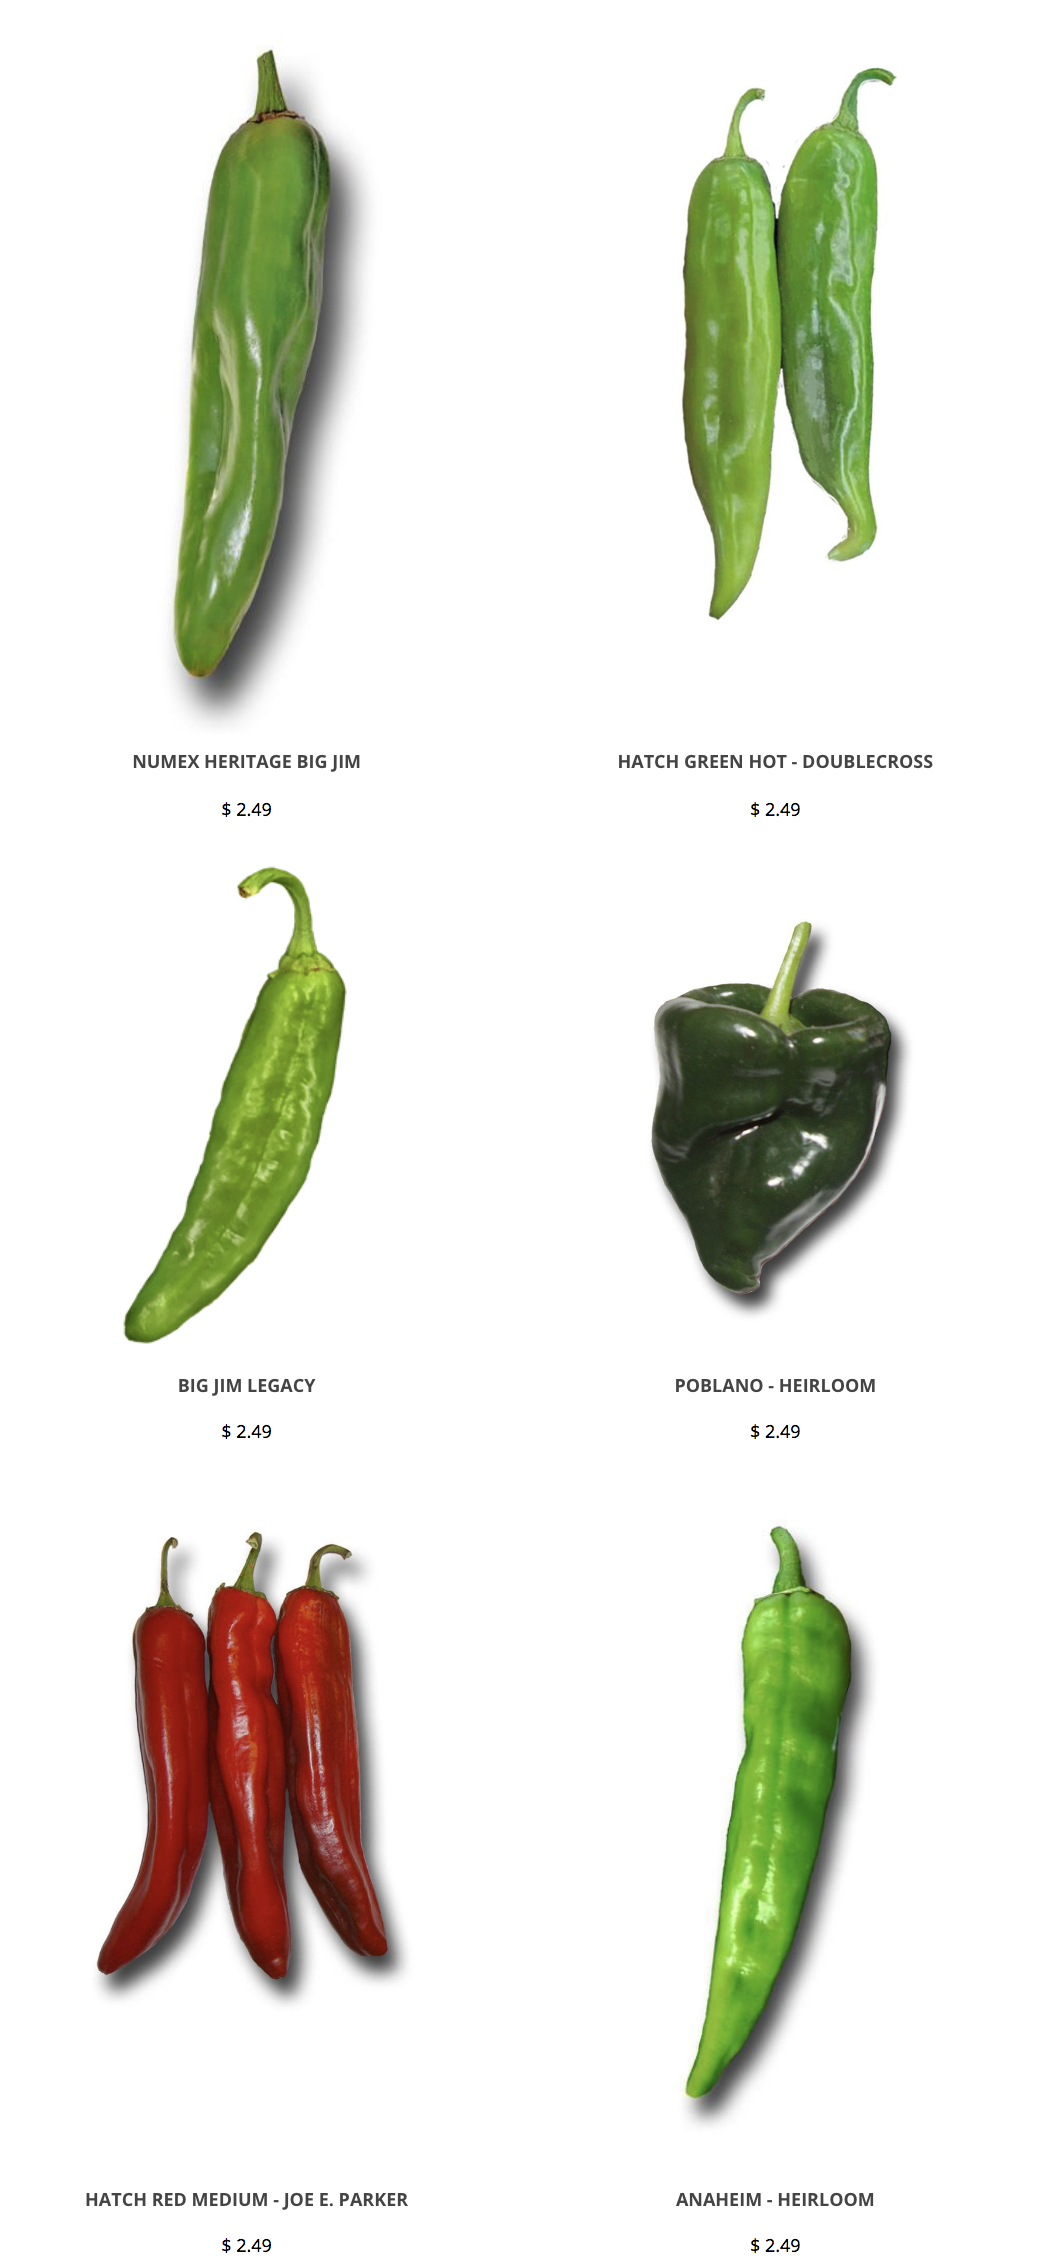 Hatch Chile Seeds For Spicy New Mexican Recipes Https Www